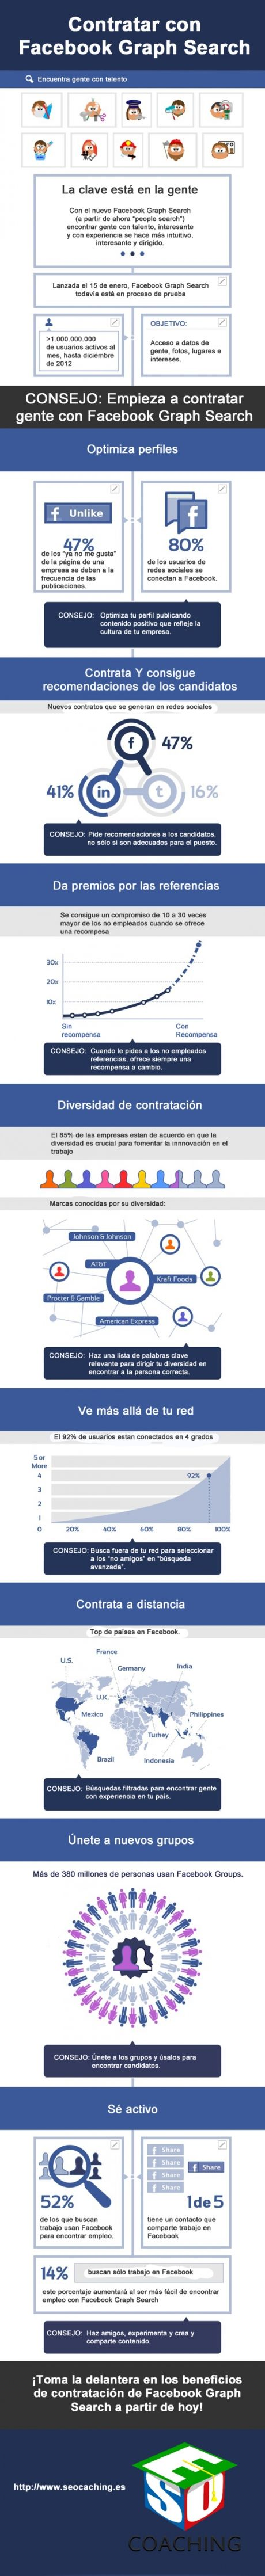 Contratar con FaceBook Graph Search #infografia